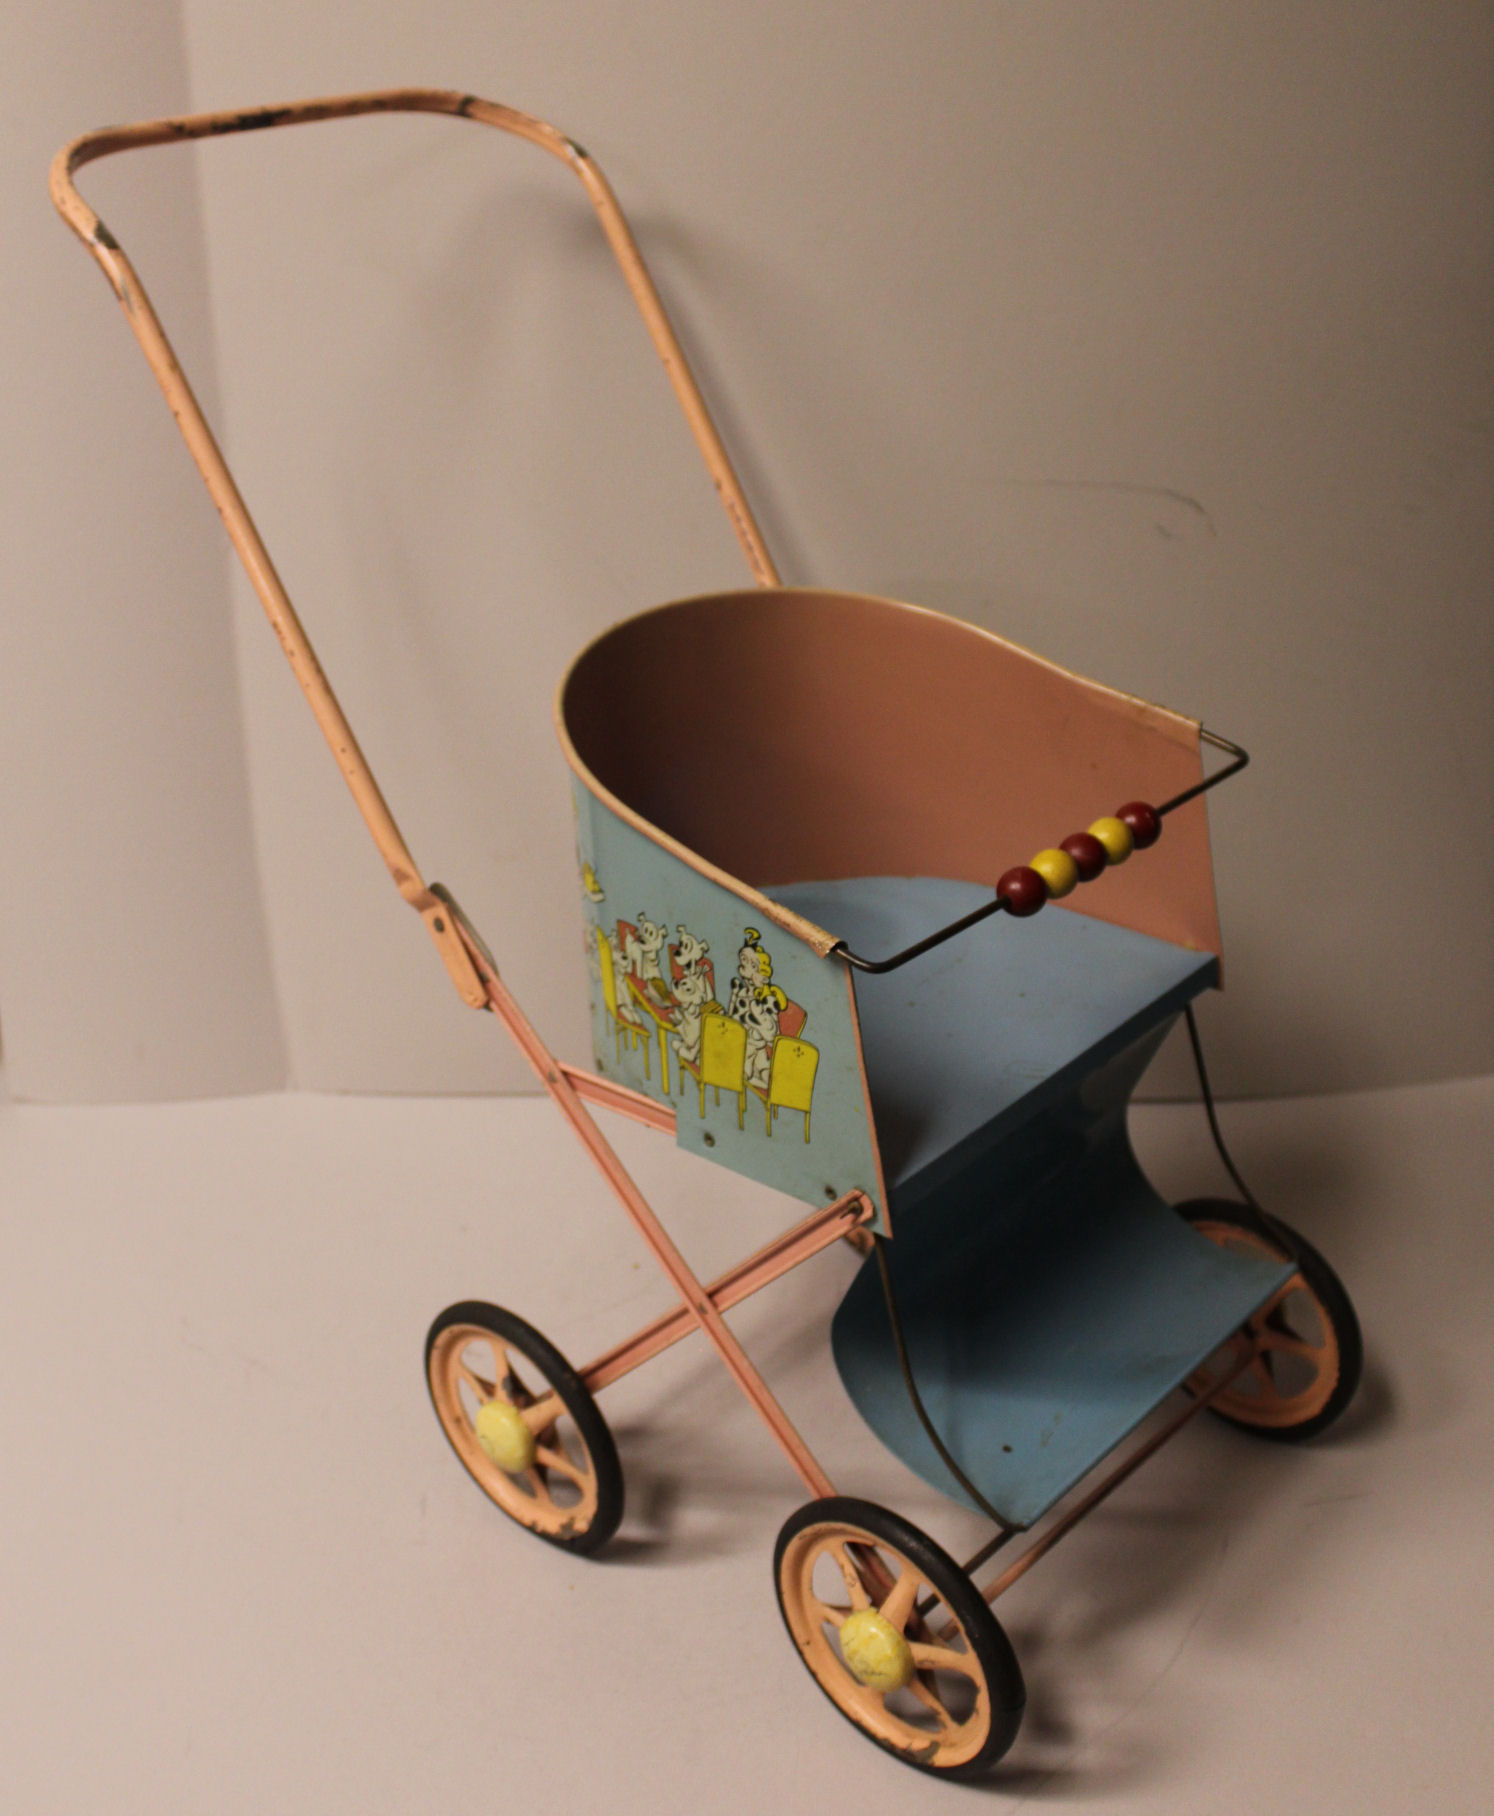 Vintage Toy Stroller Bargain John S Antiques Antique Tin Folding Handle Doll